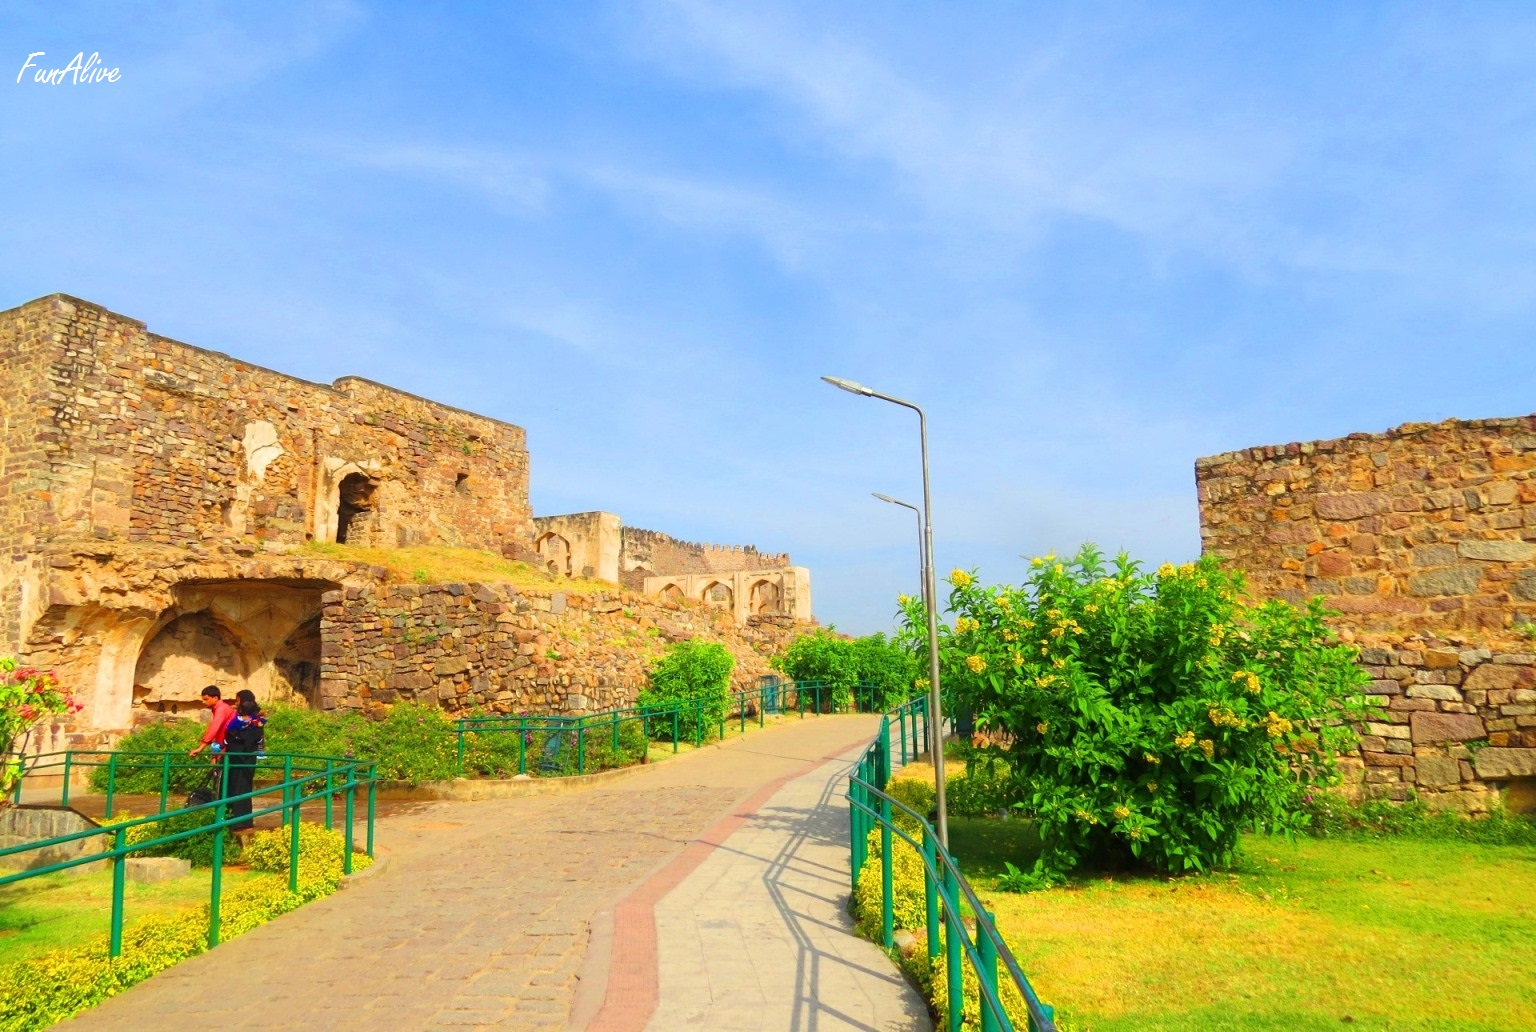 Golkonda Fort - The Majestic and Imposing Monument Of Hyderabad